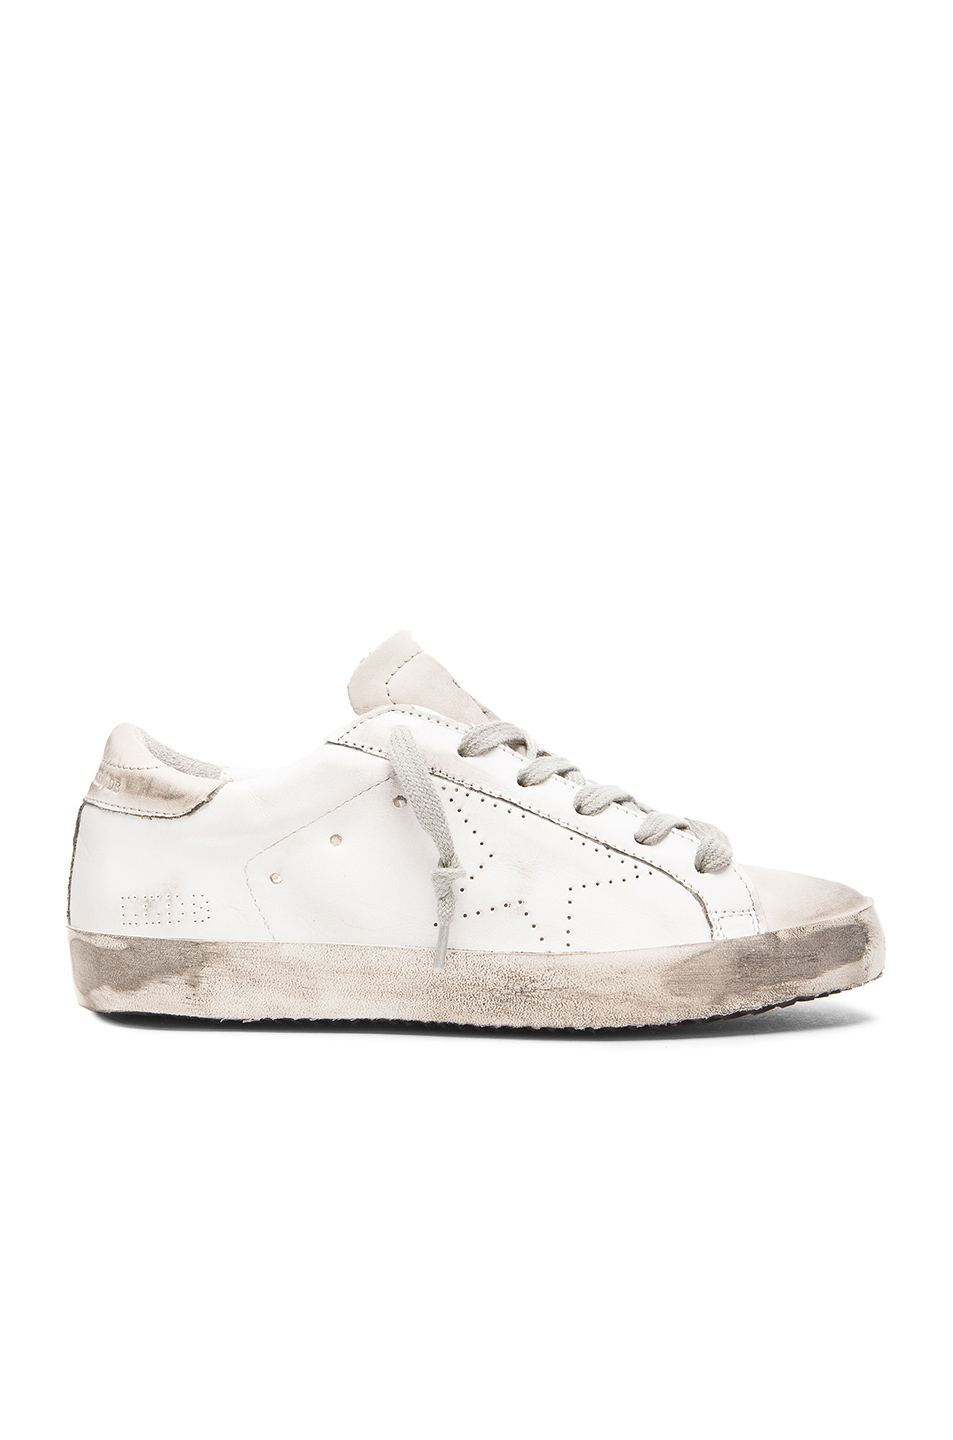 Golden Goose Superstar Suede Low-Top Sneakers Find Great Online kja0Rr